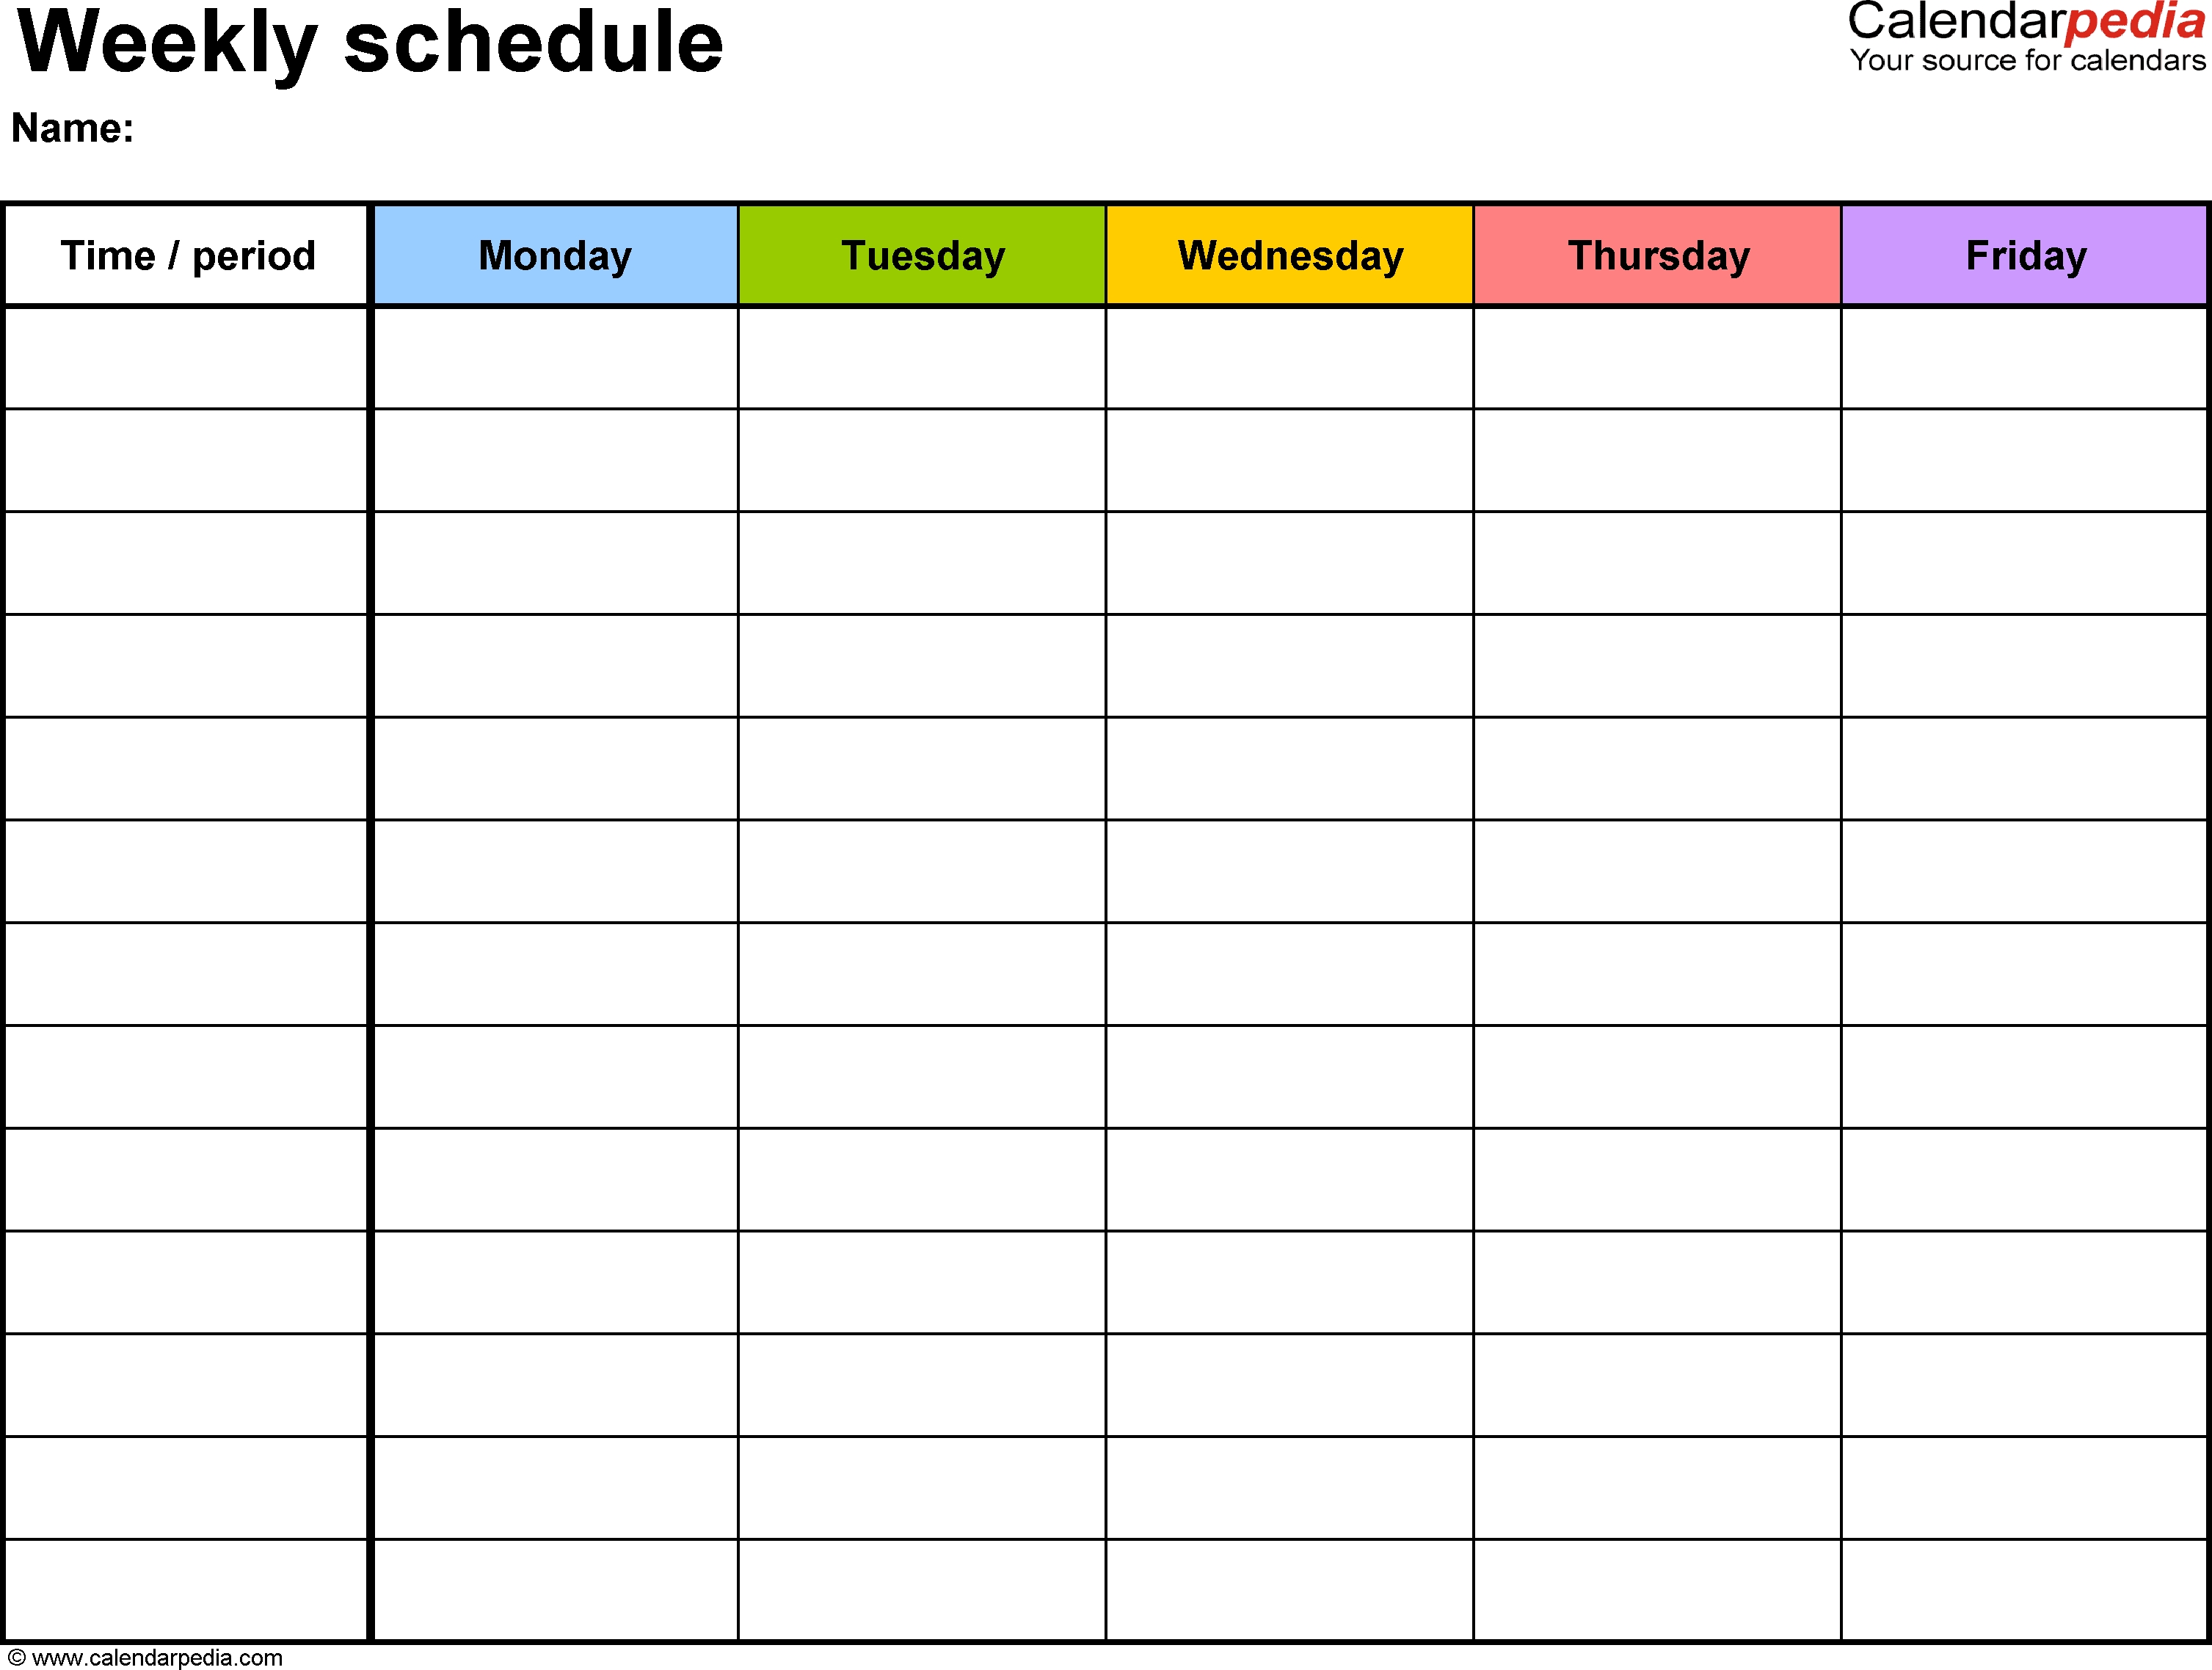 Free Weekly Schedule Templates For Word - 18 Templates intended for Fill In Blank Weekly Calendar Templates